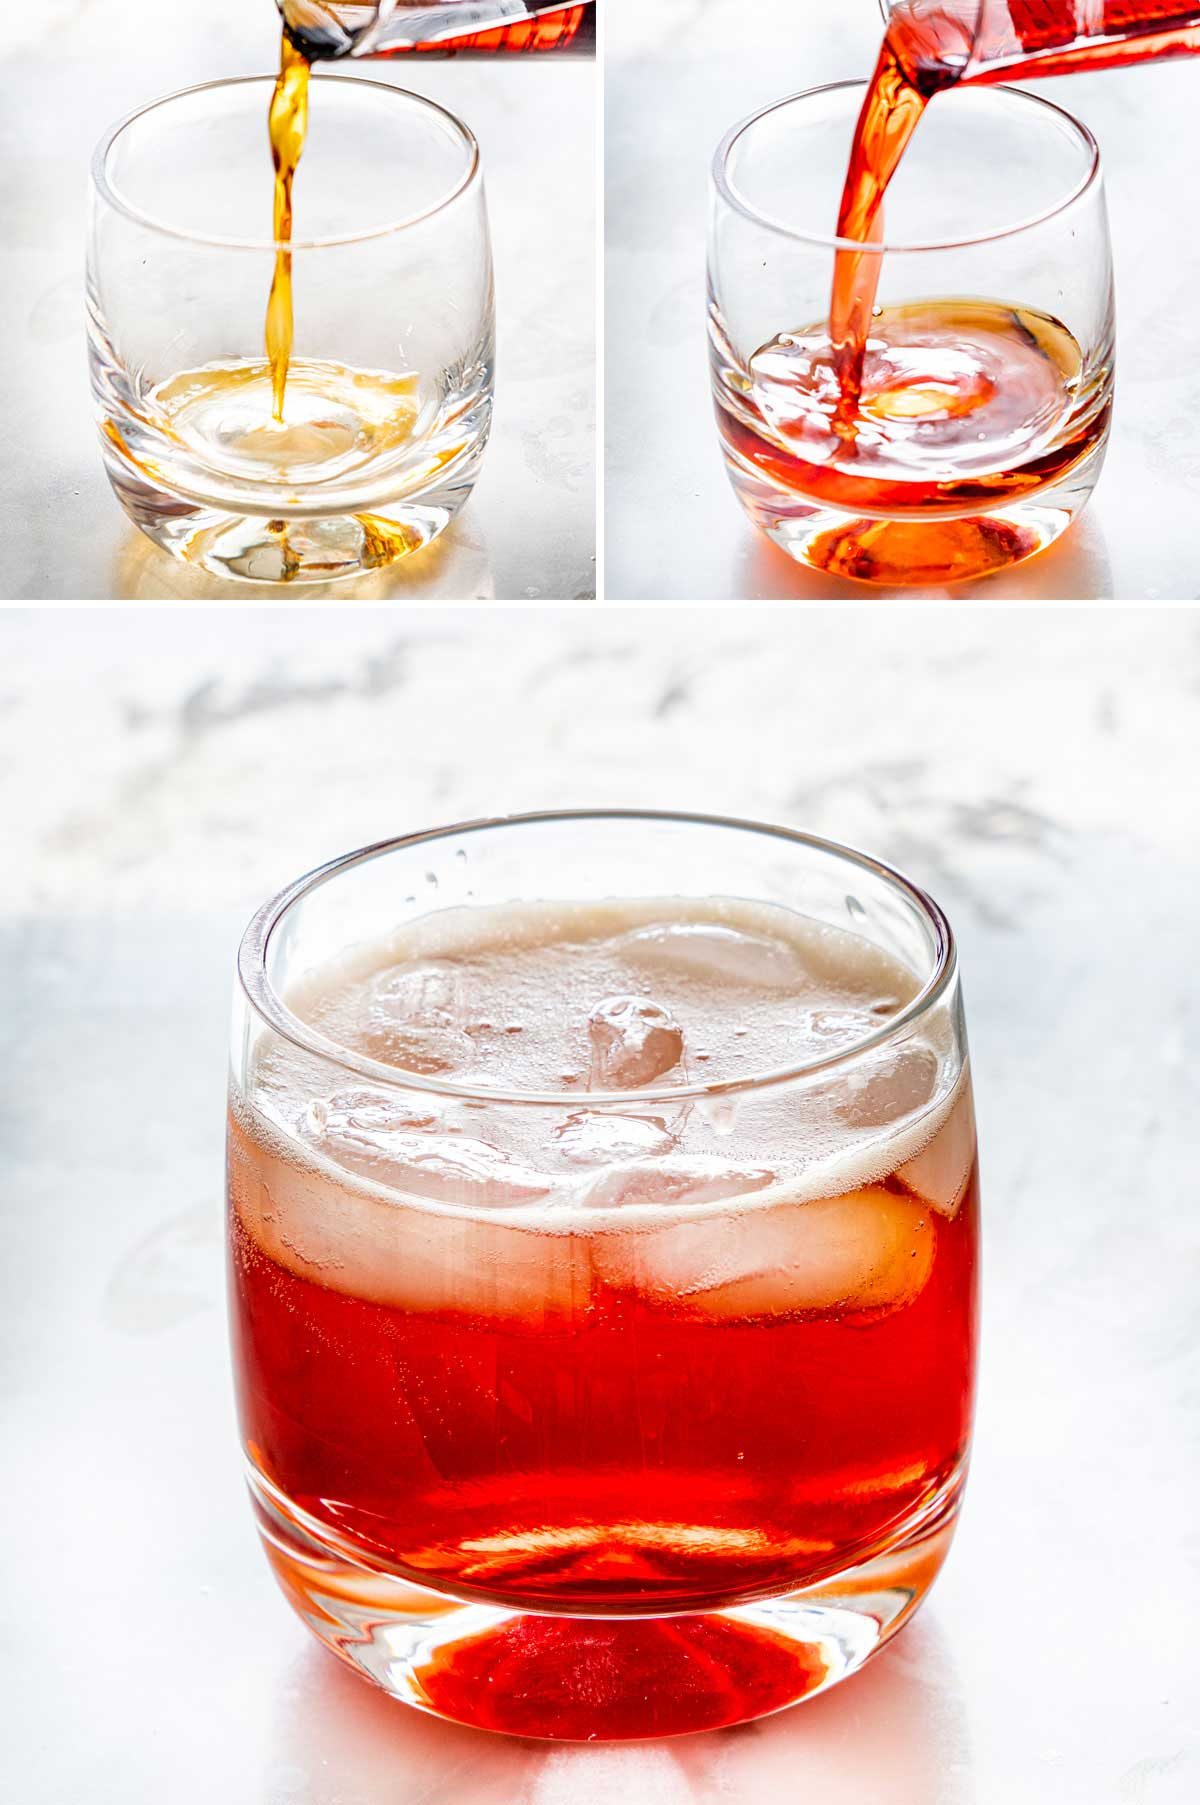 process shots showing how to make an americano cocktail